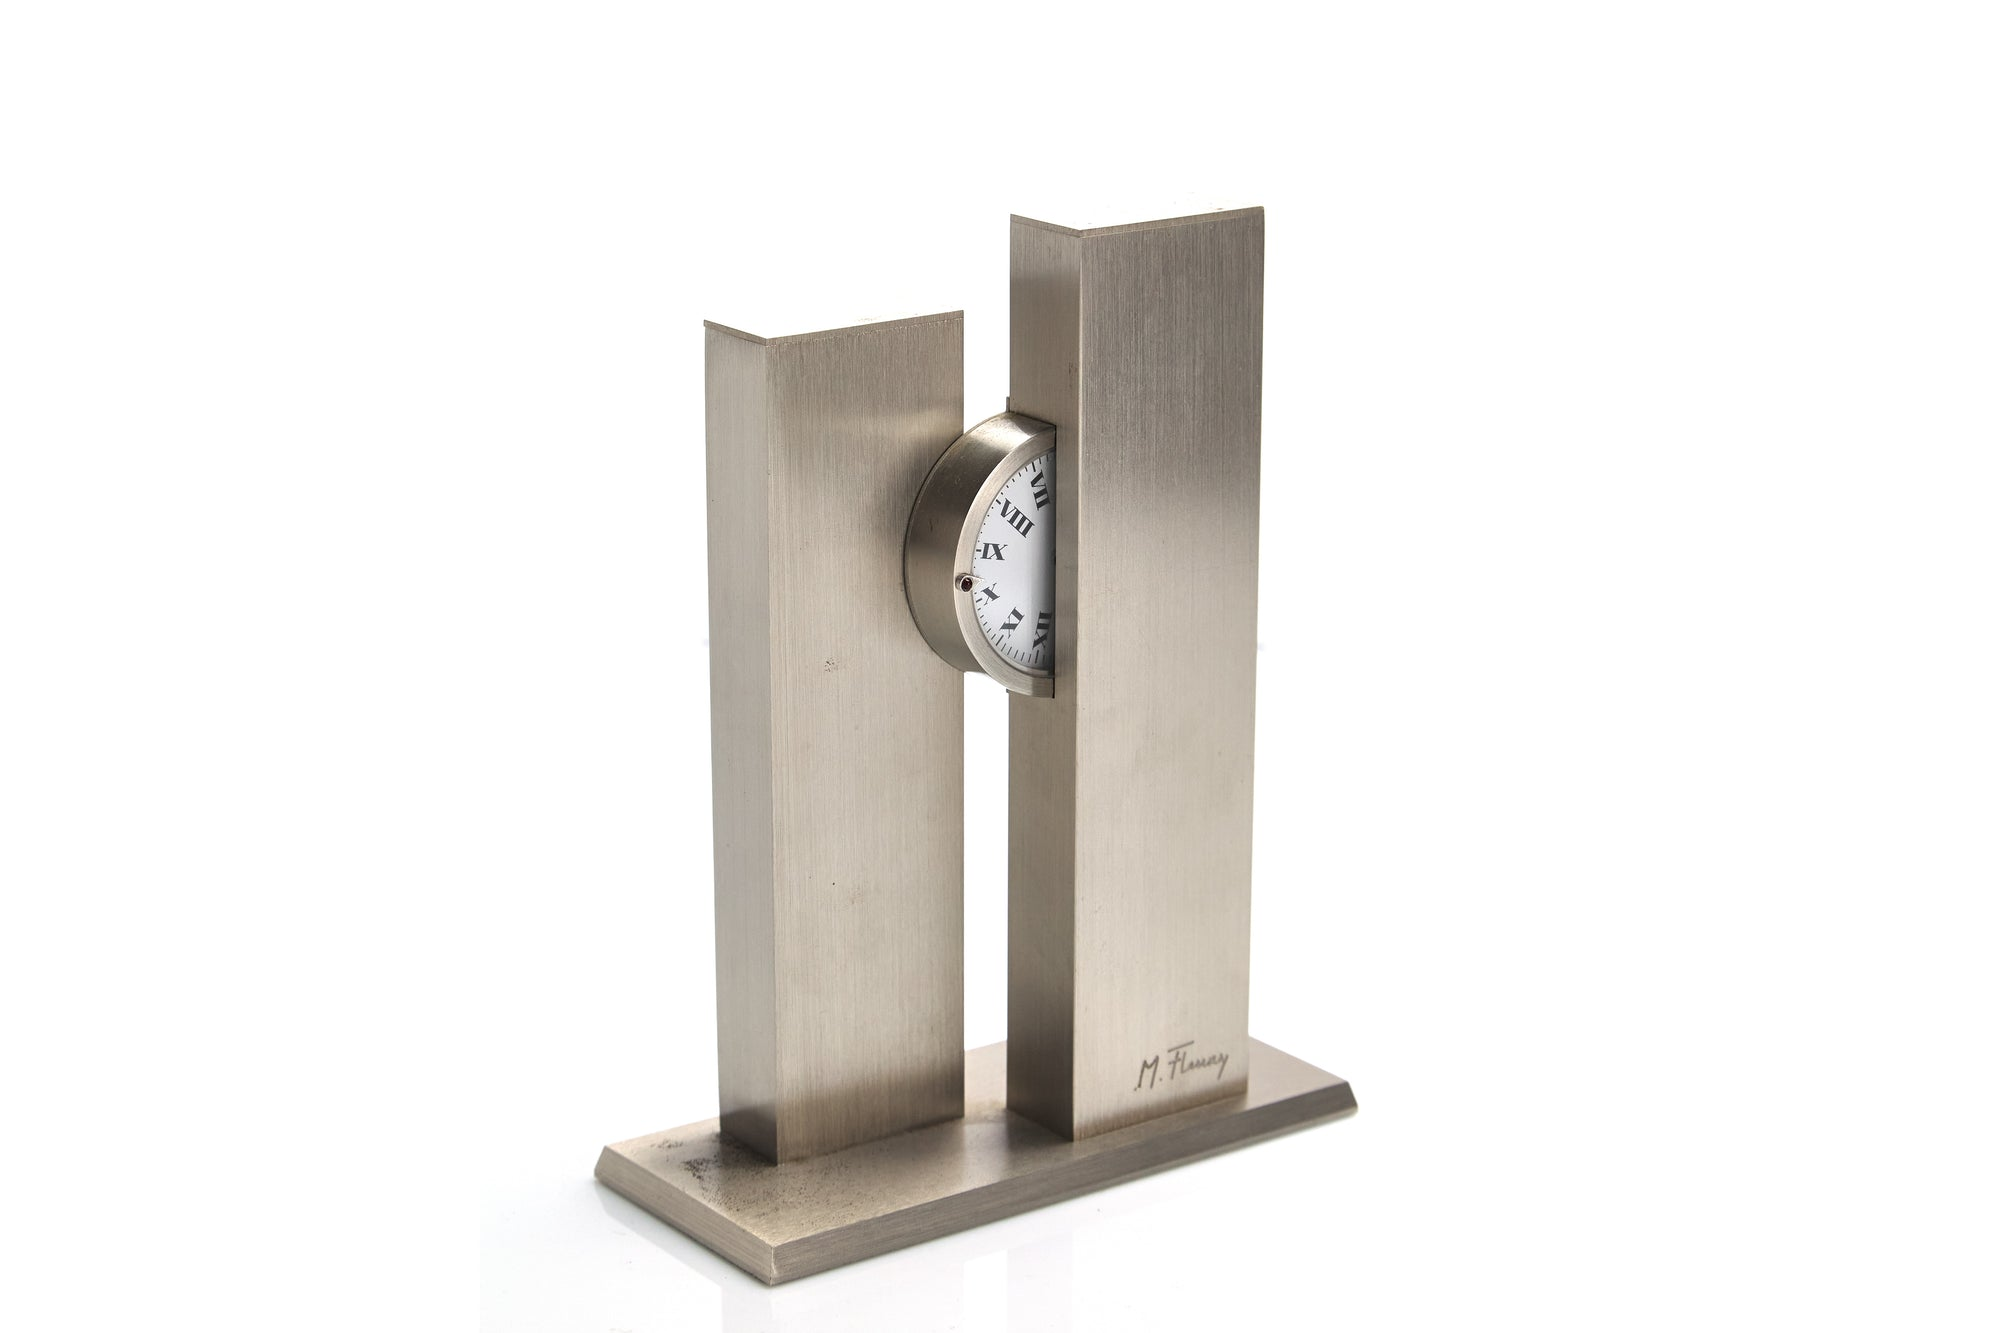 Modern Table Clock, M.Fleury